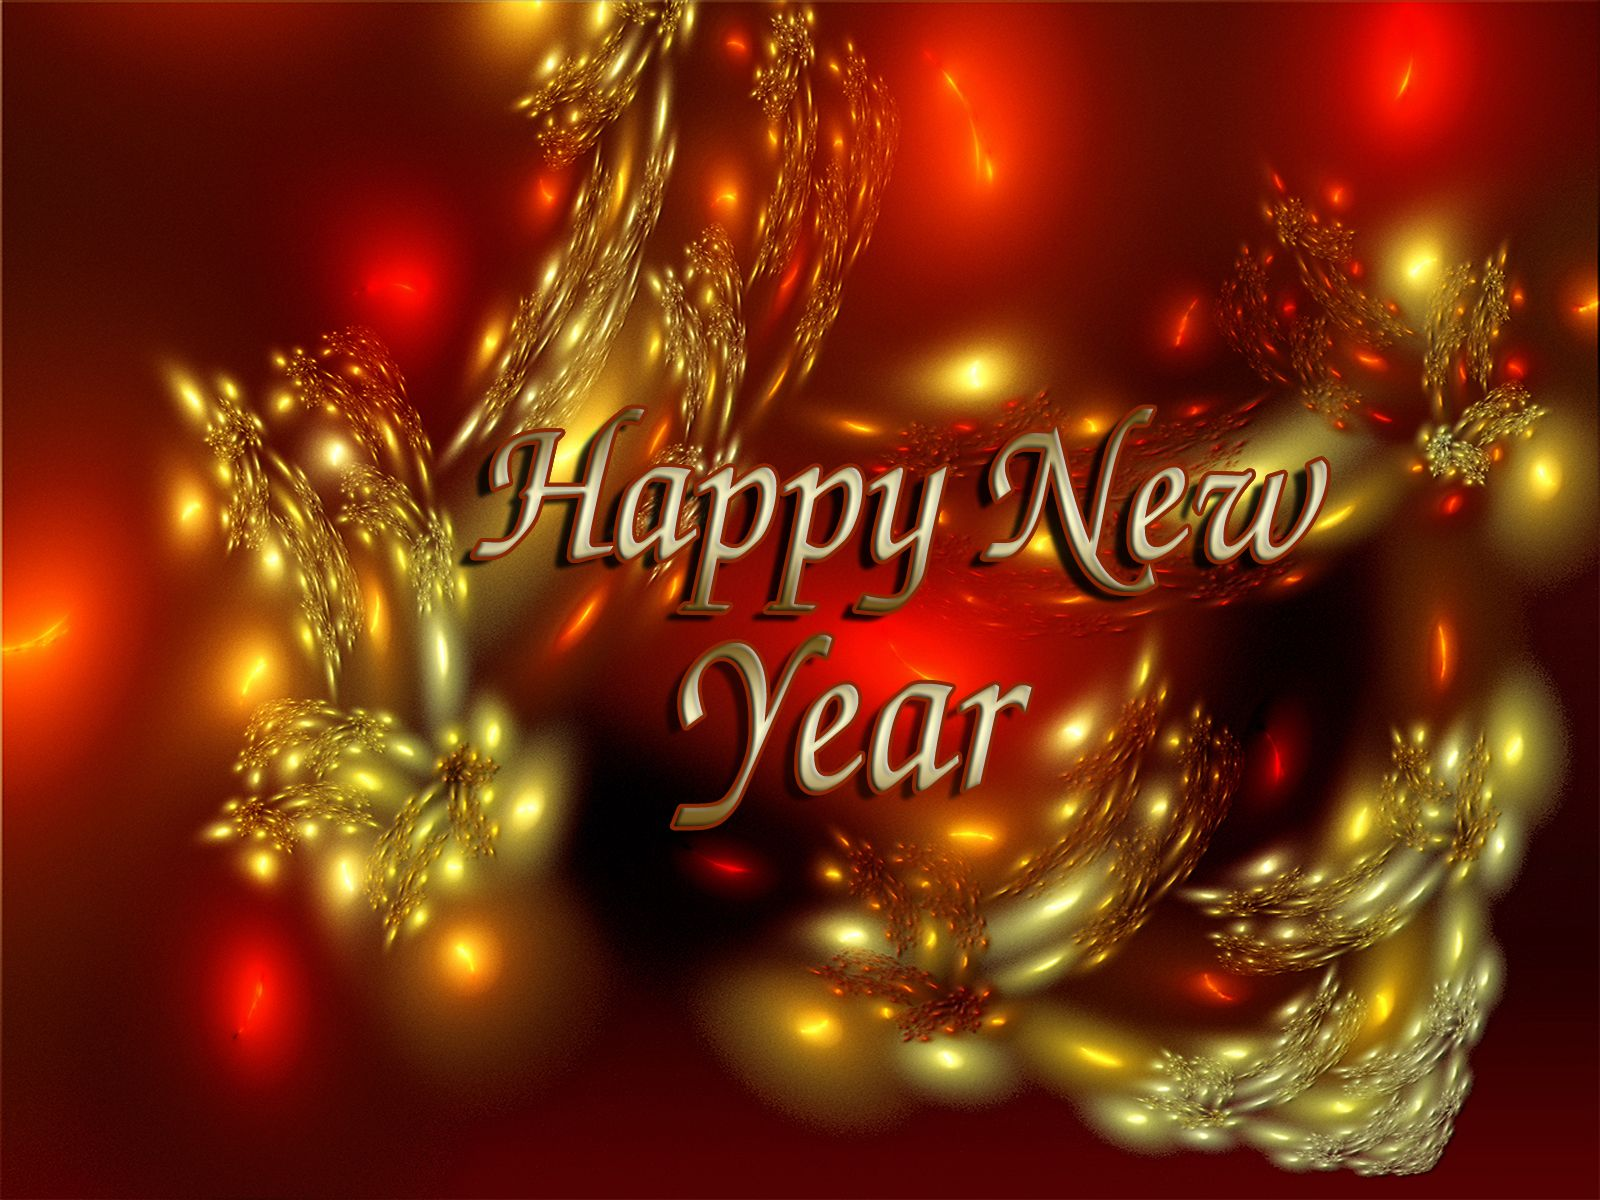 Free New Years Wallpaper For Your Desktop Happy New Year Animation Happy New Year Images Happy New Year Wallpaper